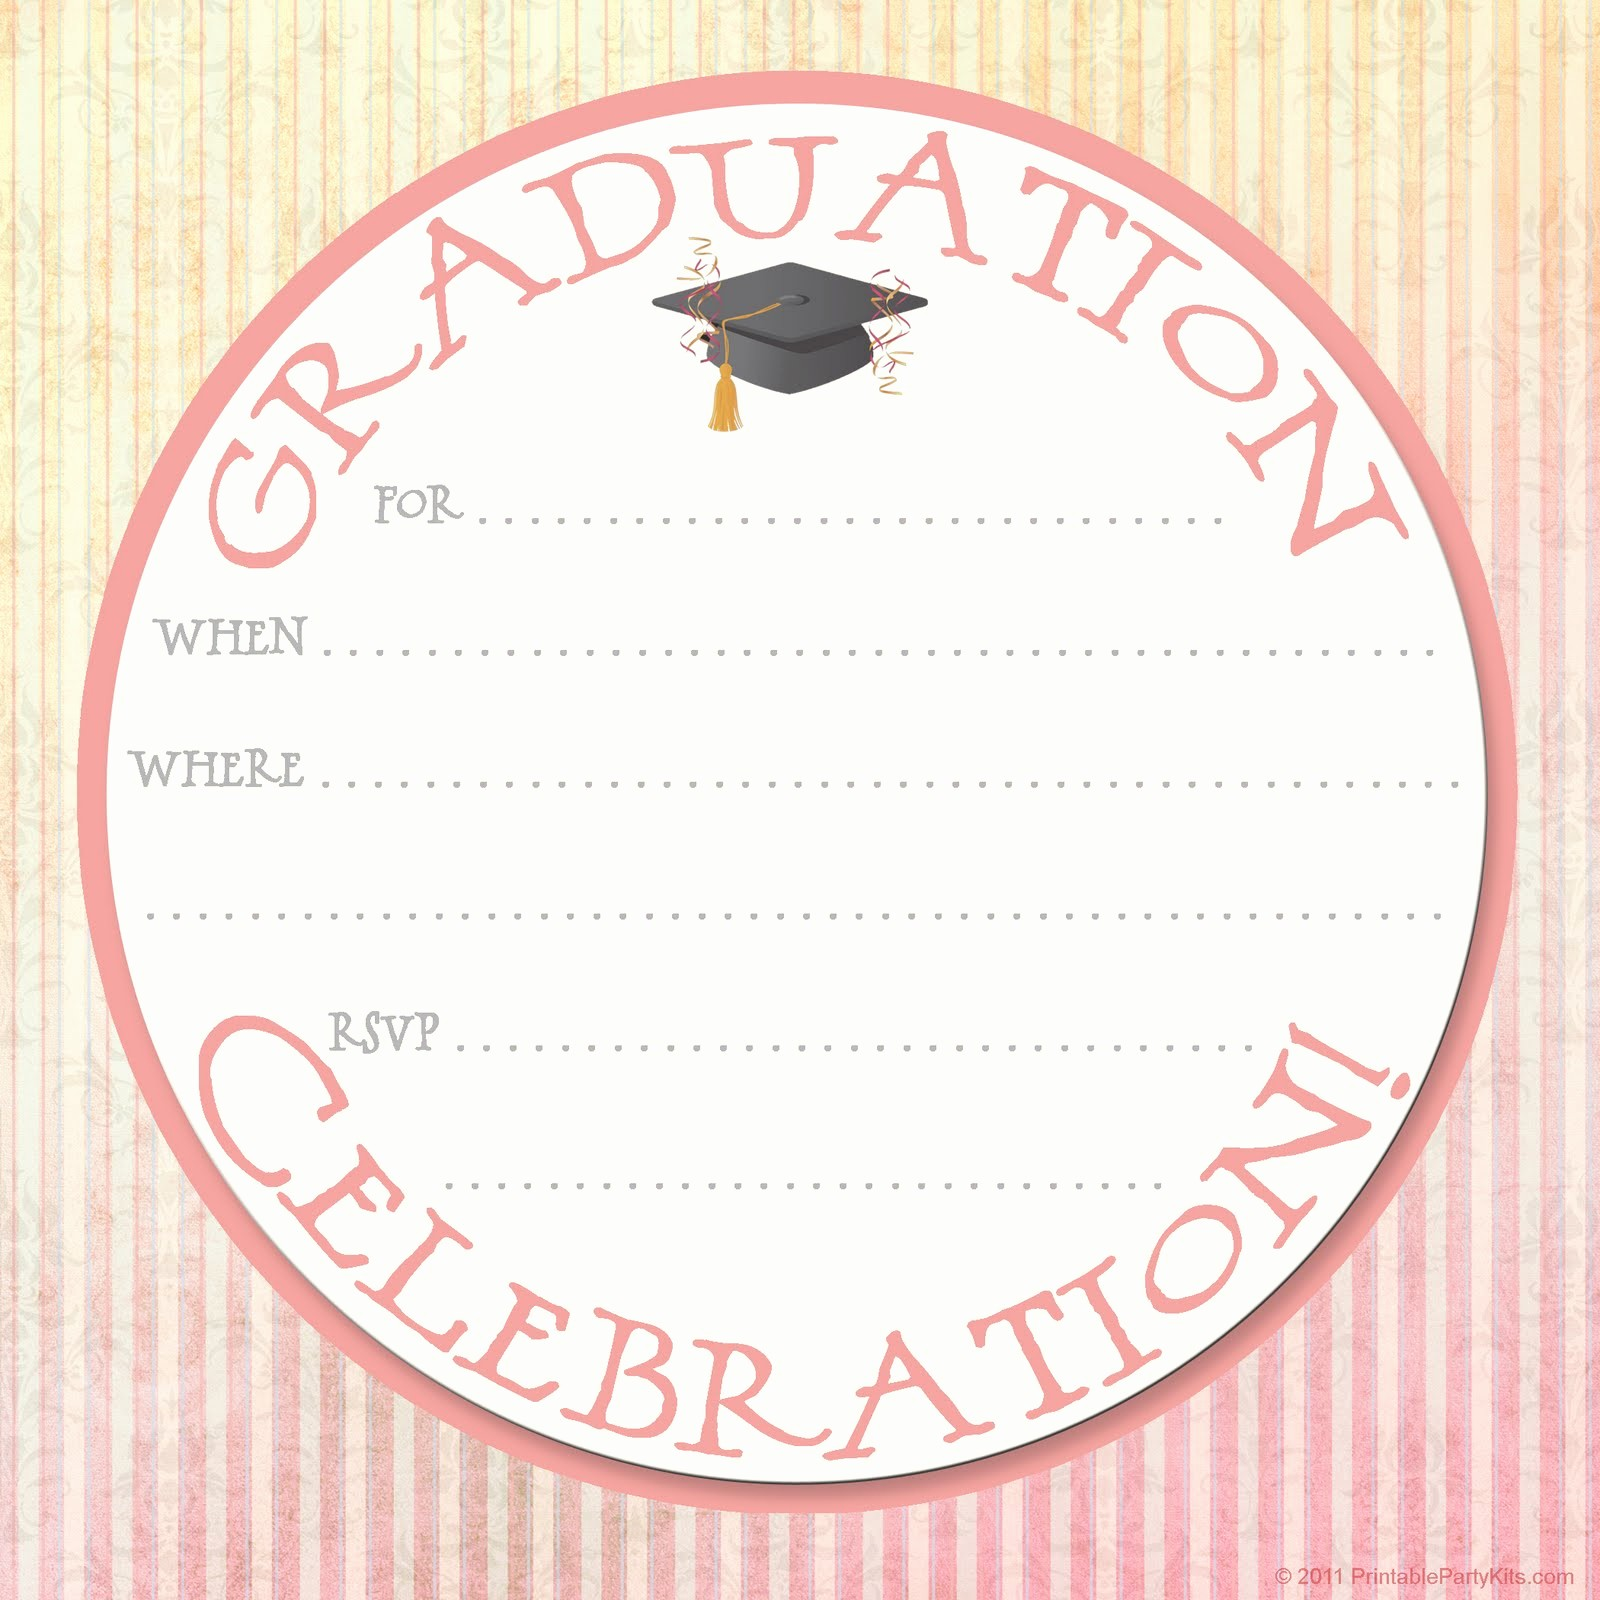 Free Graduation Party Invitations Templates Fresh Free Printable Party Invitations Graduation Party